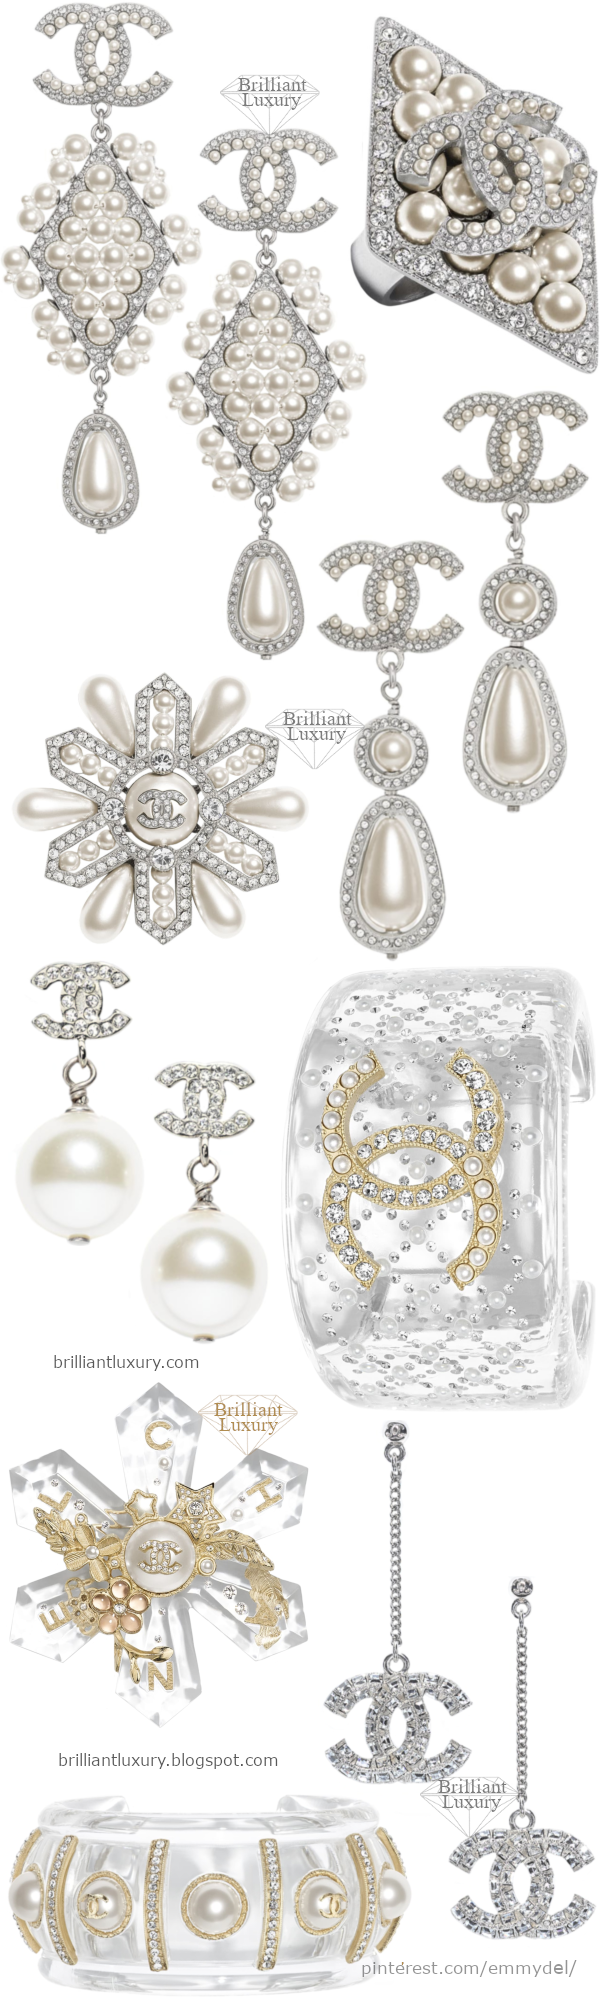 CHANEL Costume Jewelry II